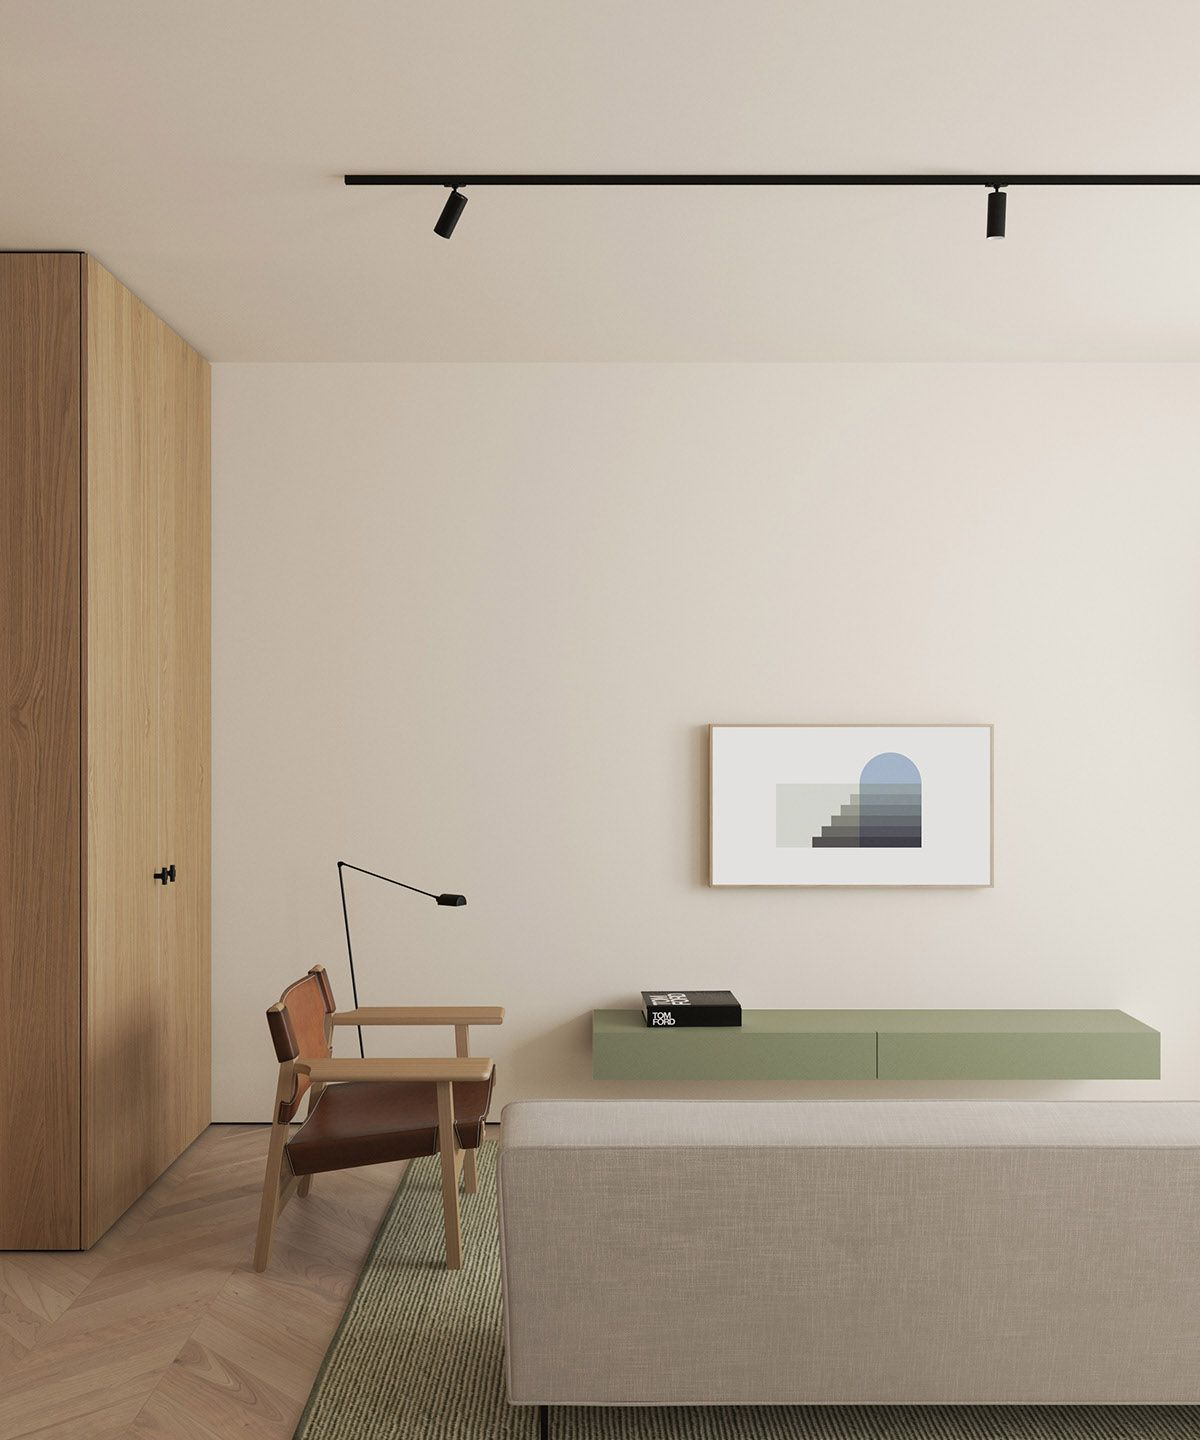 Marvelous Present Off the Magnificence In Simplicity Of Fashionable Scandinavian Design